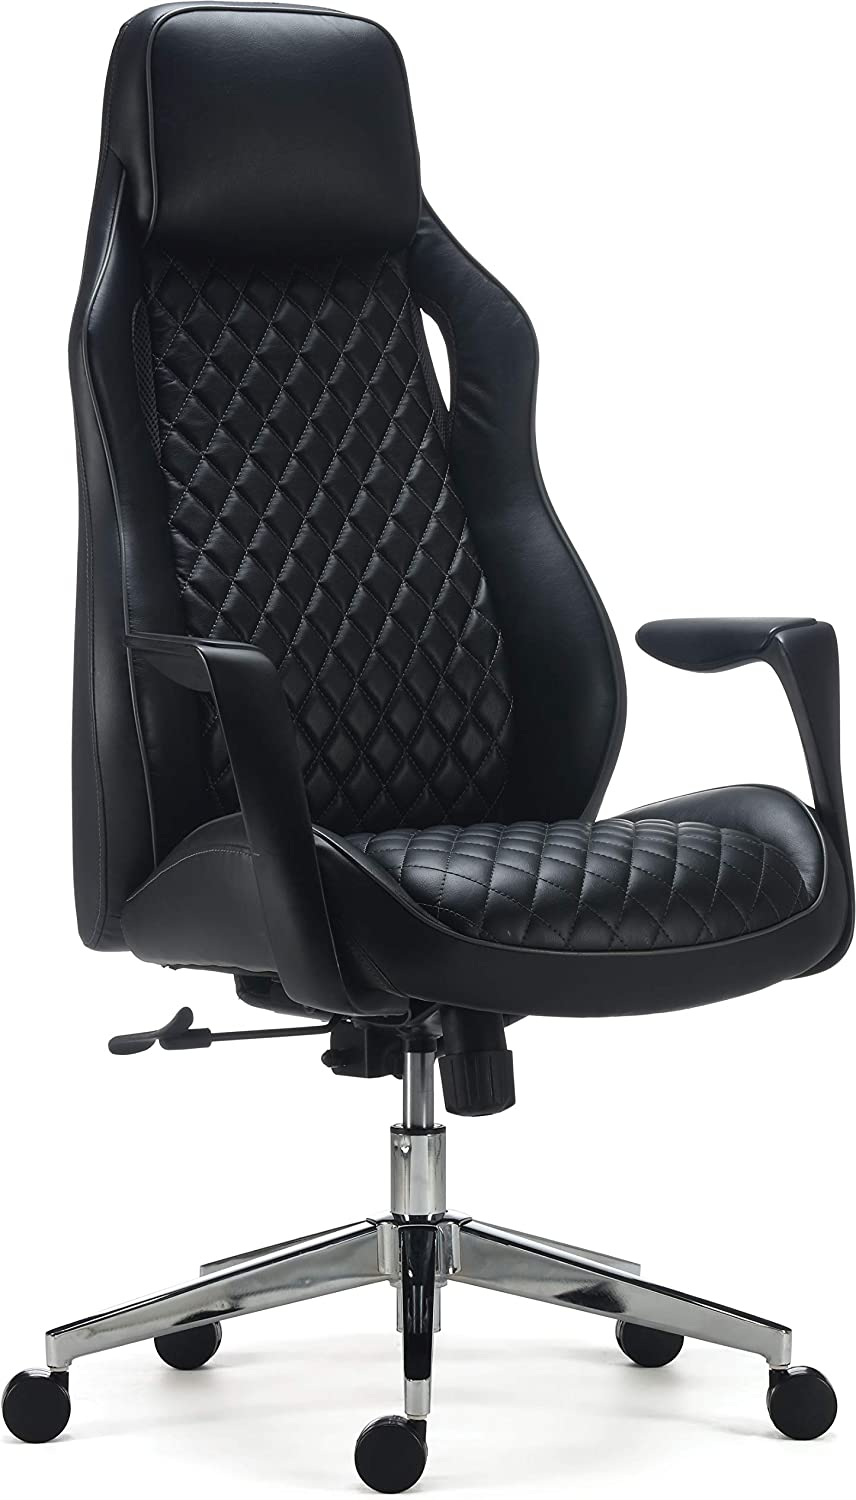 Staples 24328577 Renaro Bonded Leather Managers Chair Black